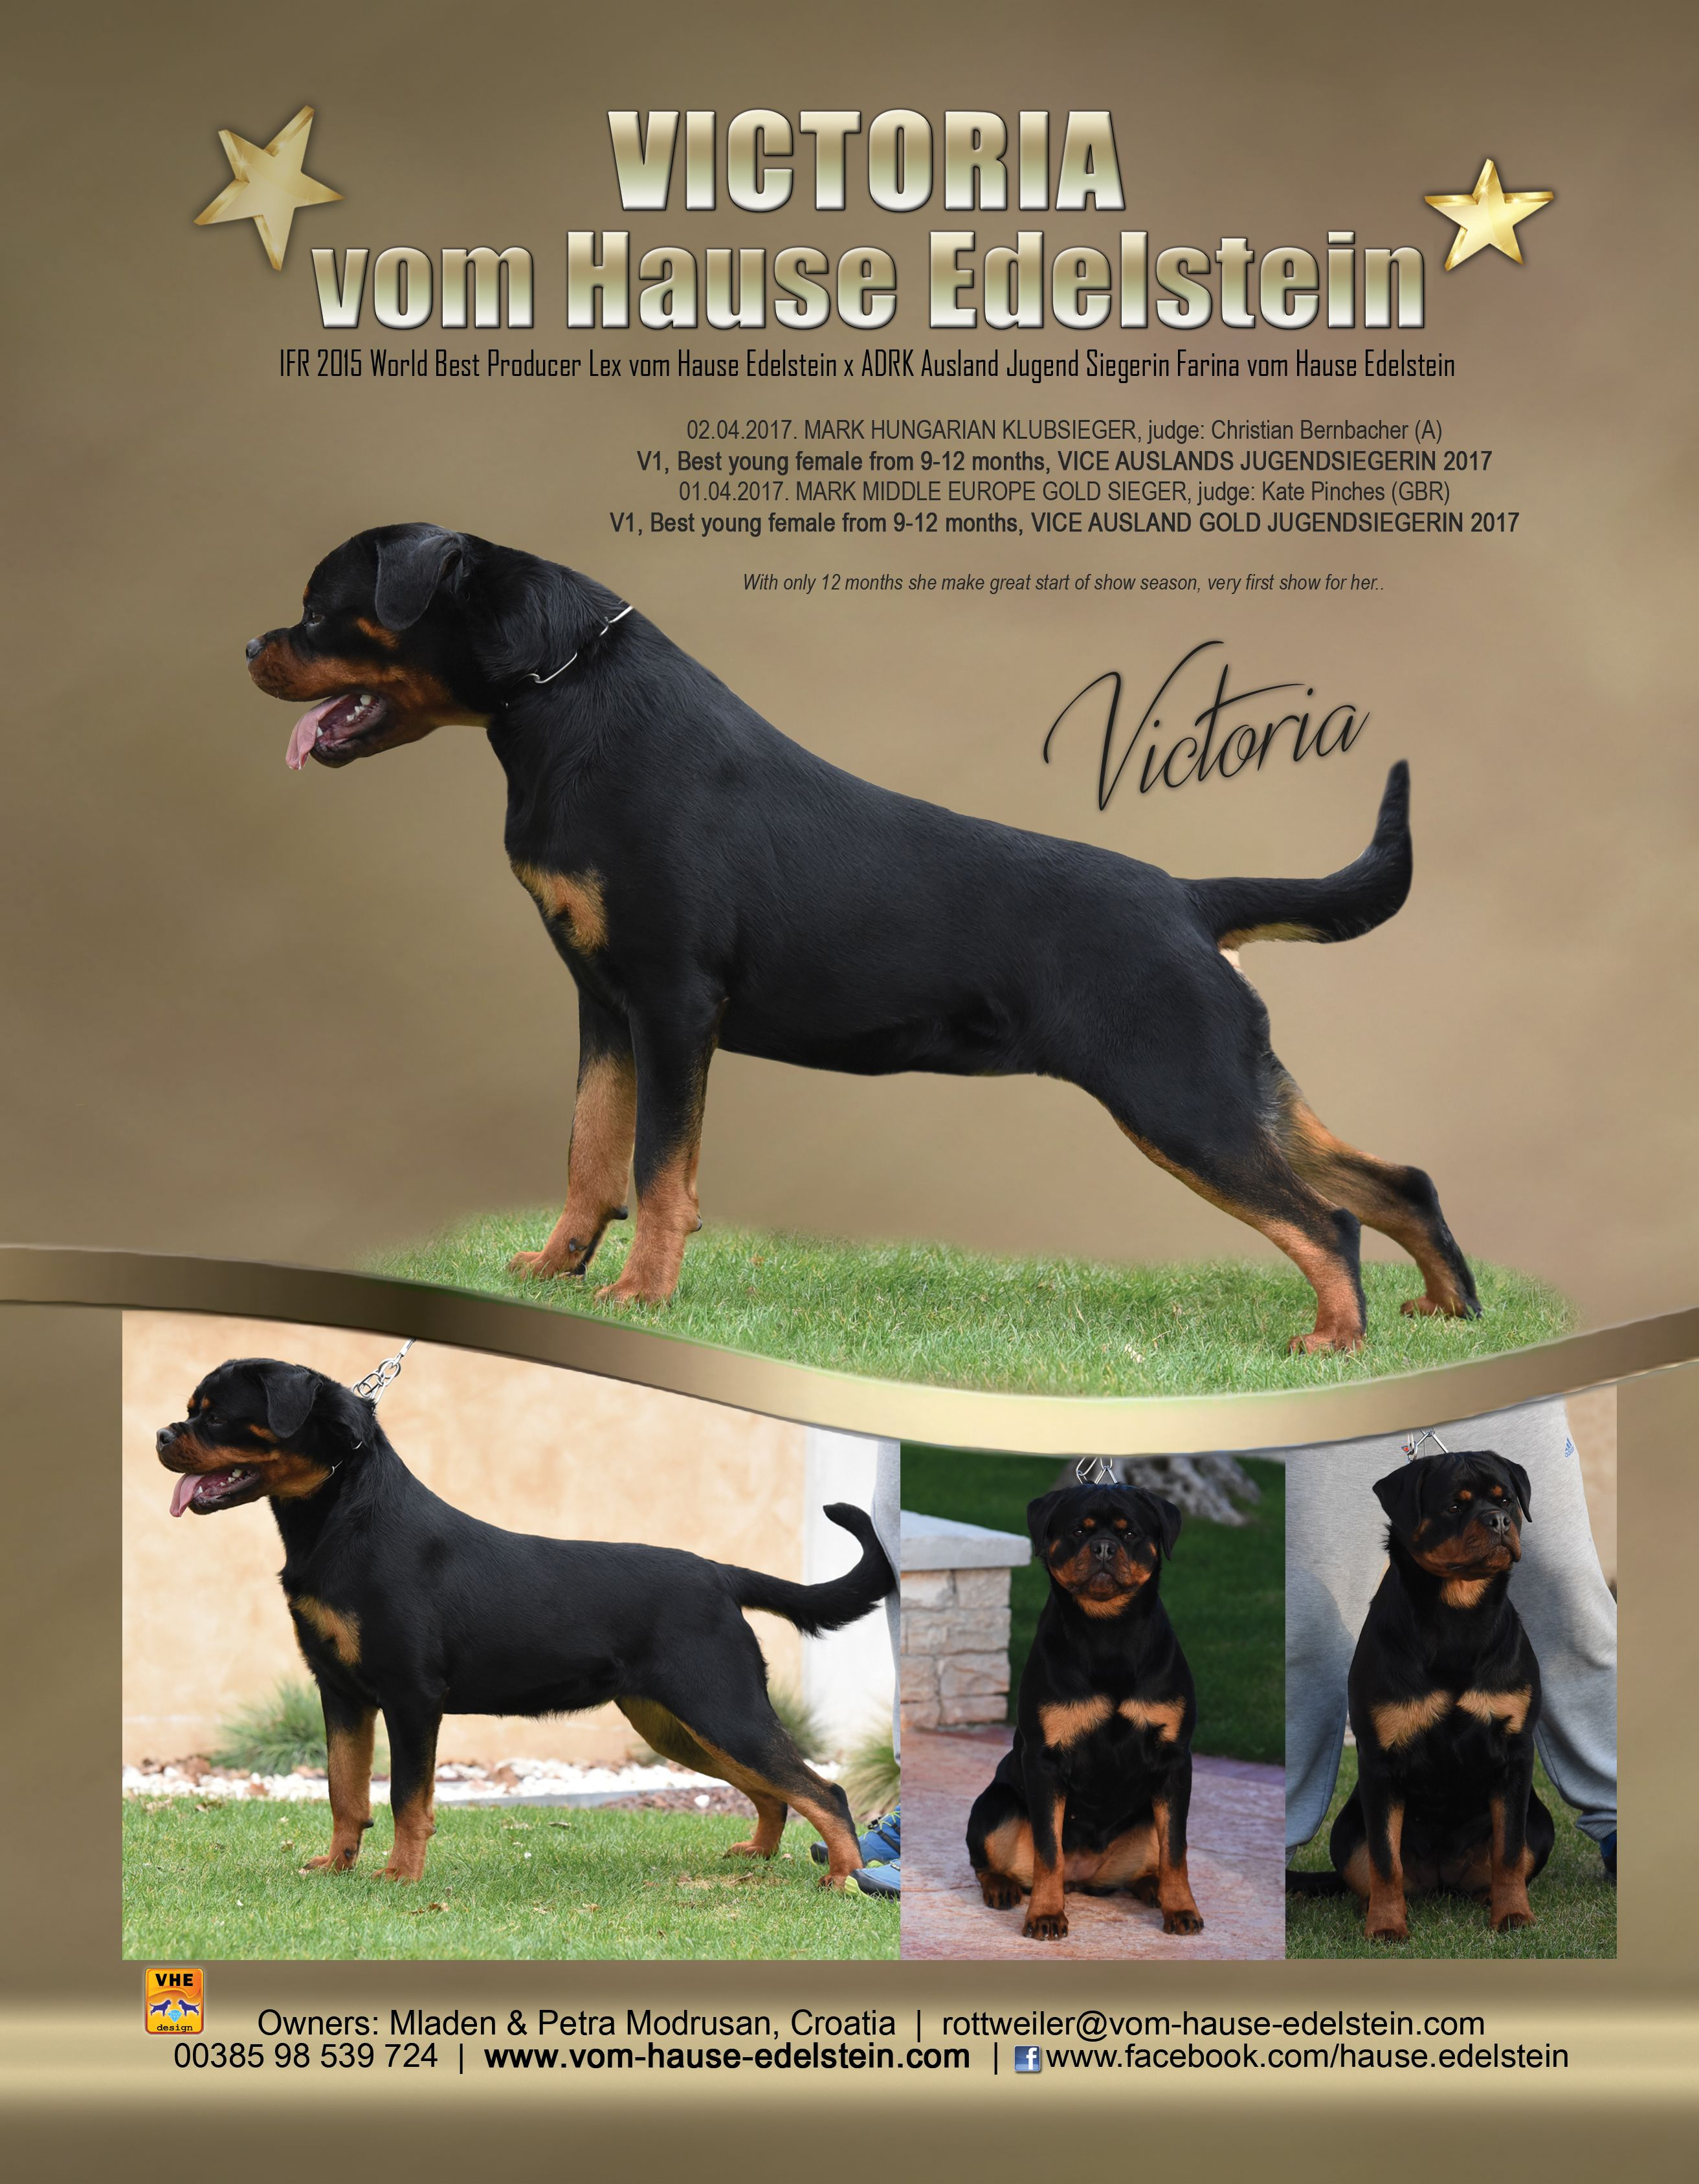 Pin By Kathy Crigler On Rotts Rottweiler Article Writing Vets